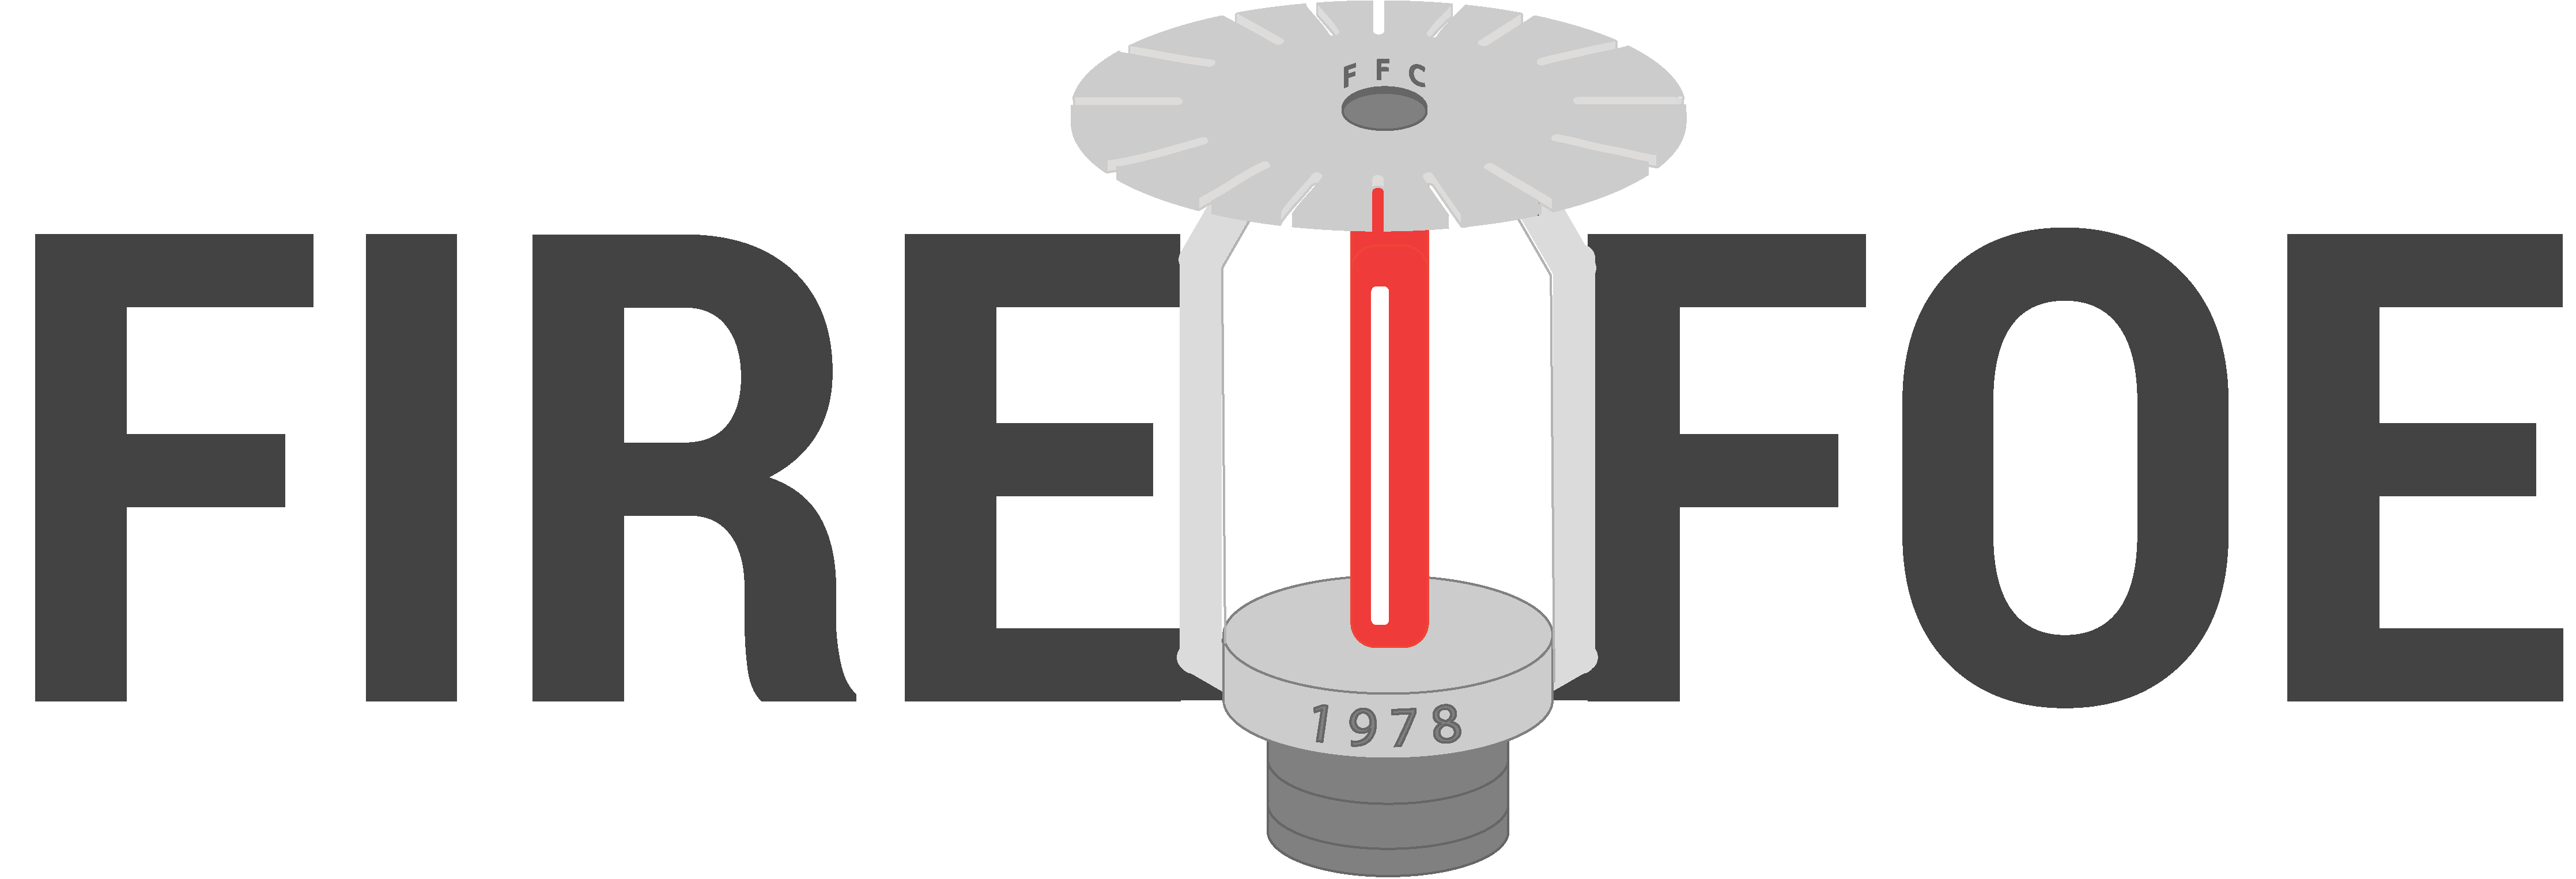 Fire Foe Corporation logo